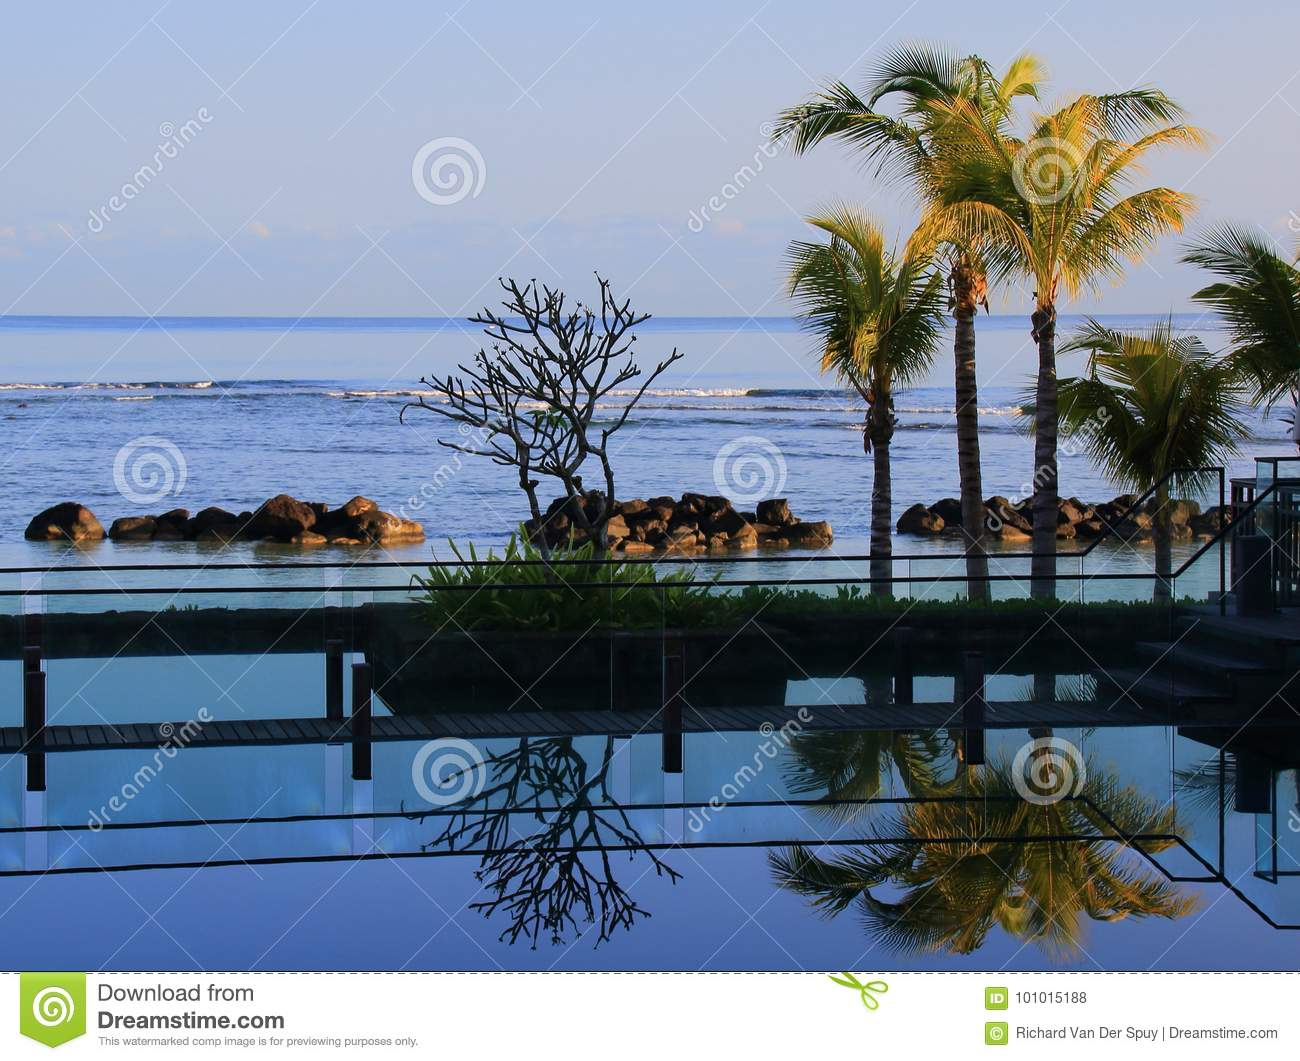 Lifestyle images of the Westin Turtal Bay Resort and Spa in Mauritius